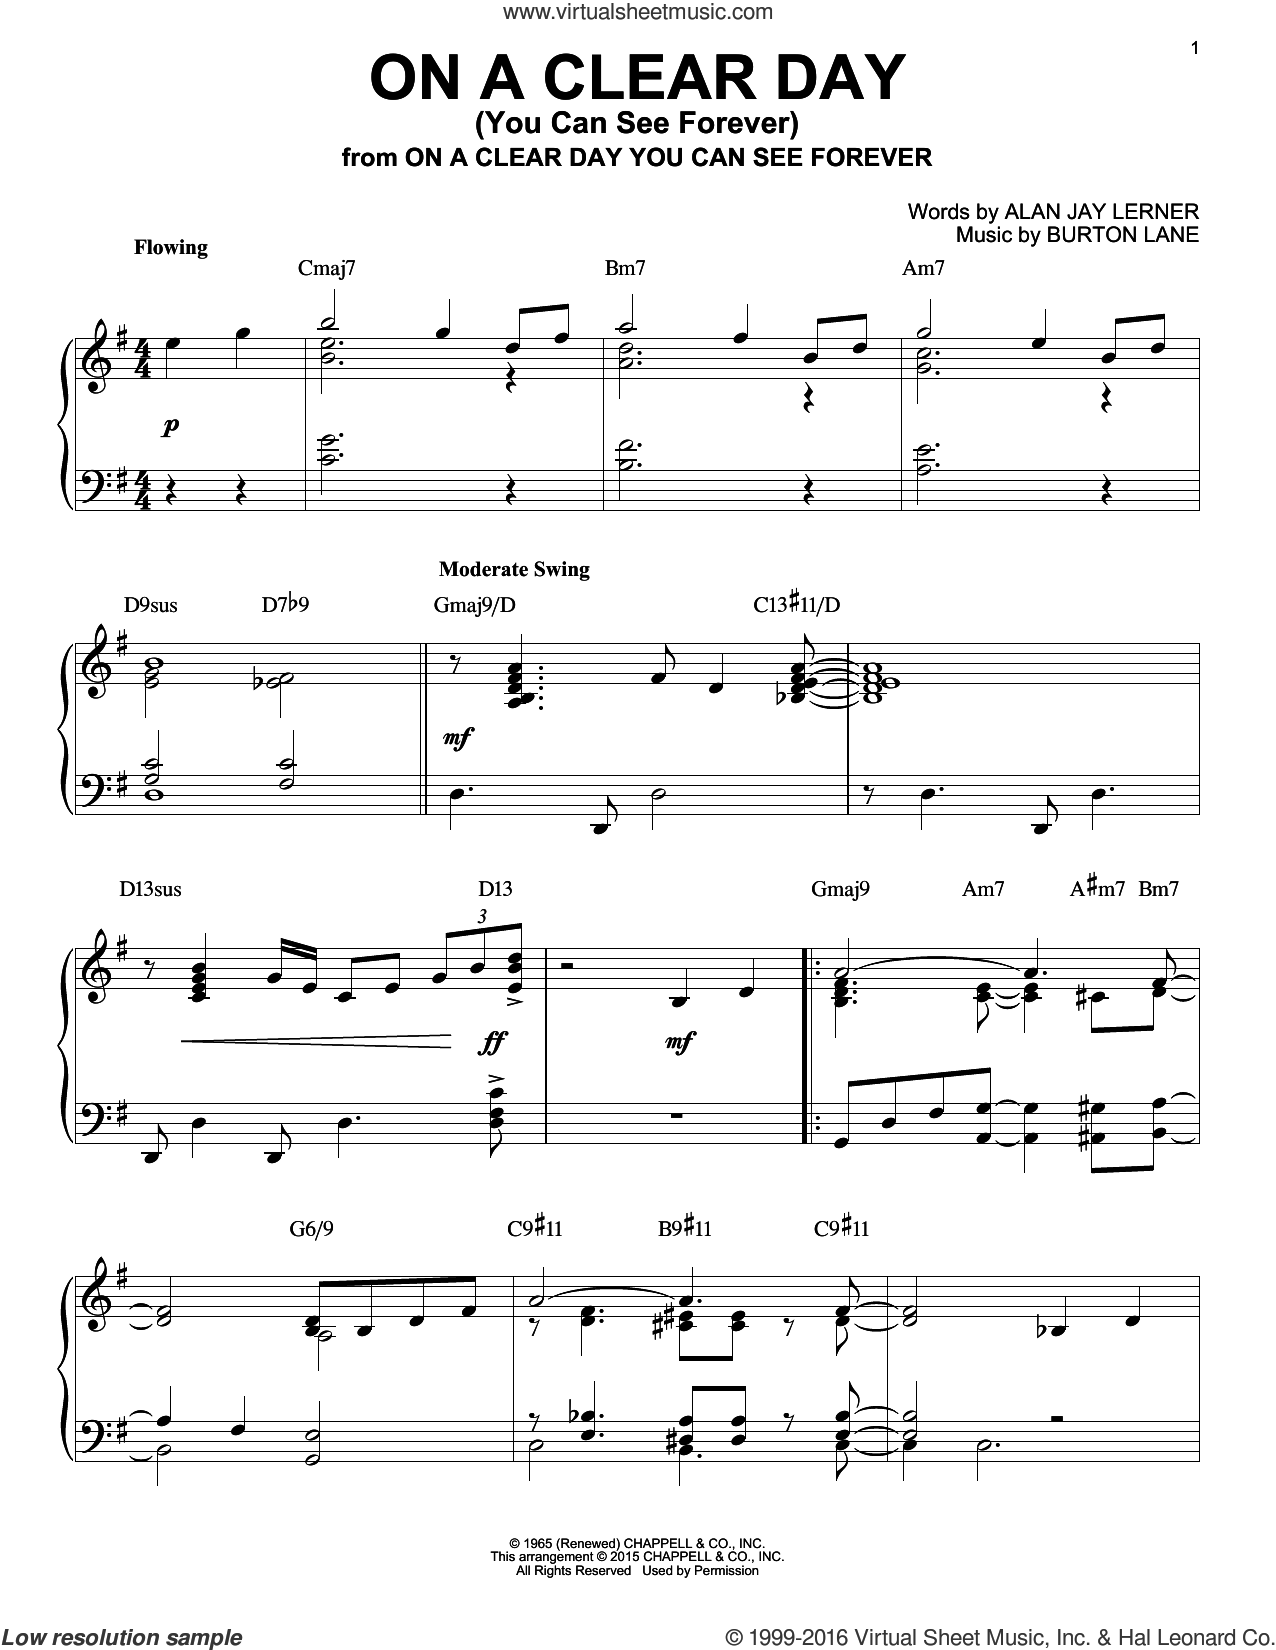 On A Clear Day (You Can See Forever) sheet music for piano solo by Alan Jay Lerner and Burton Lane. Score Image Preview.